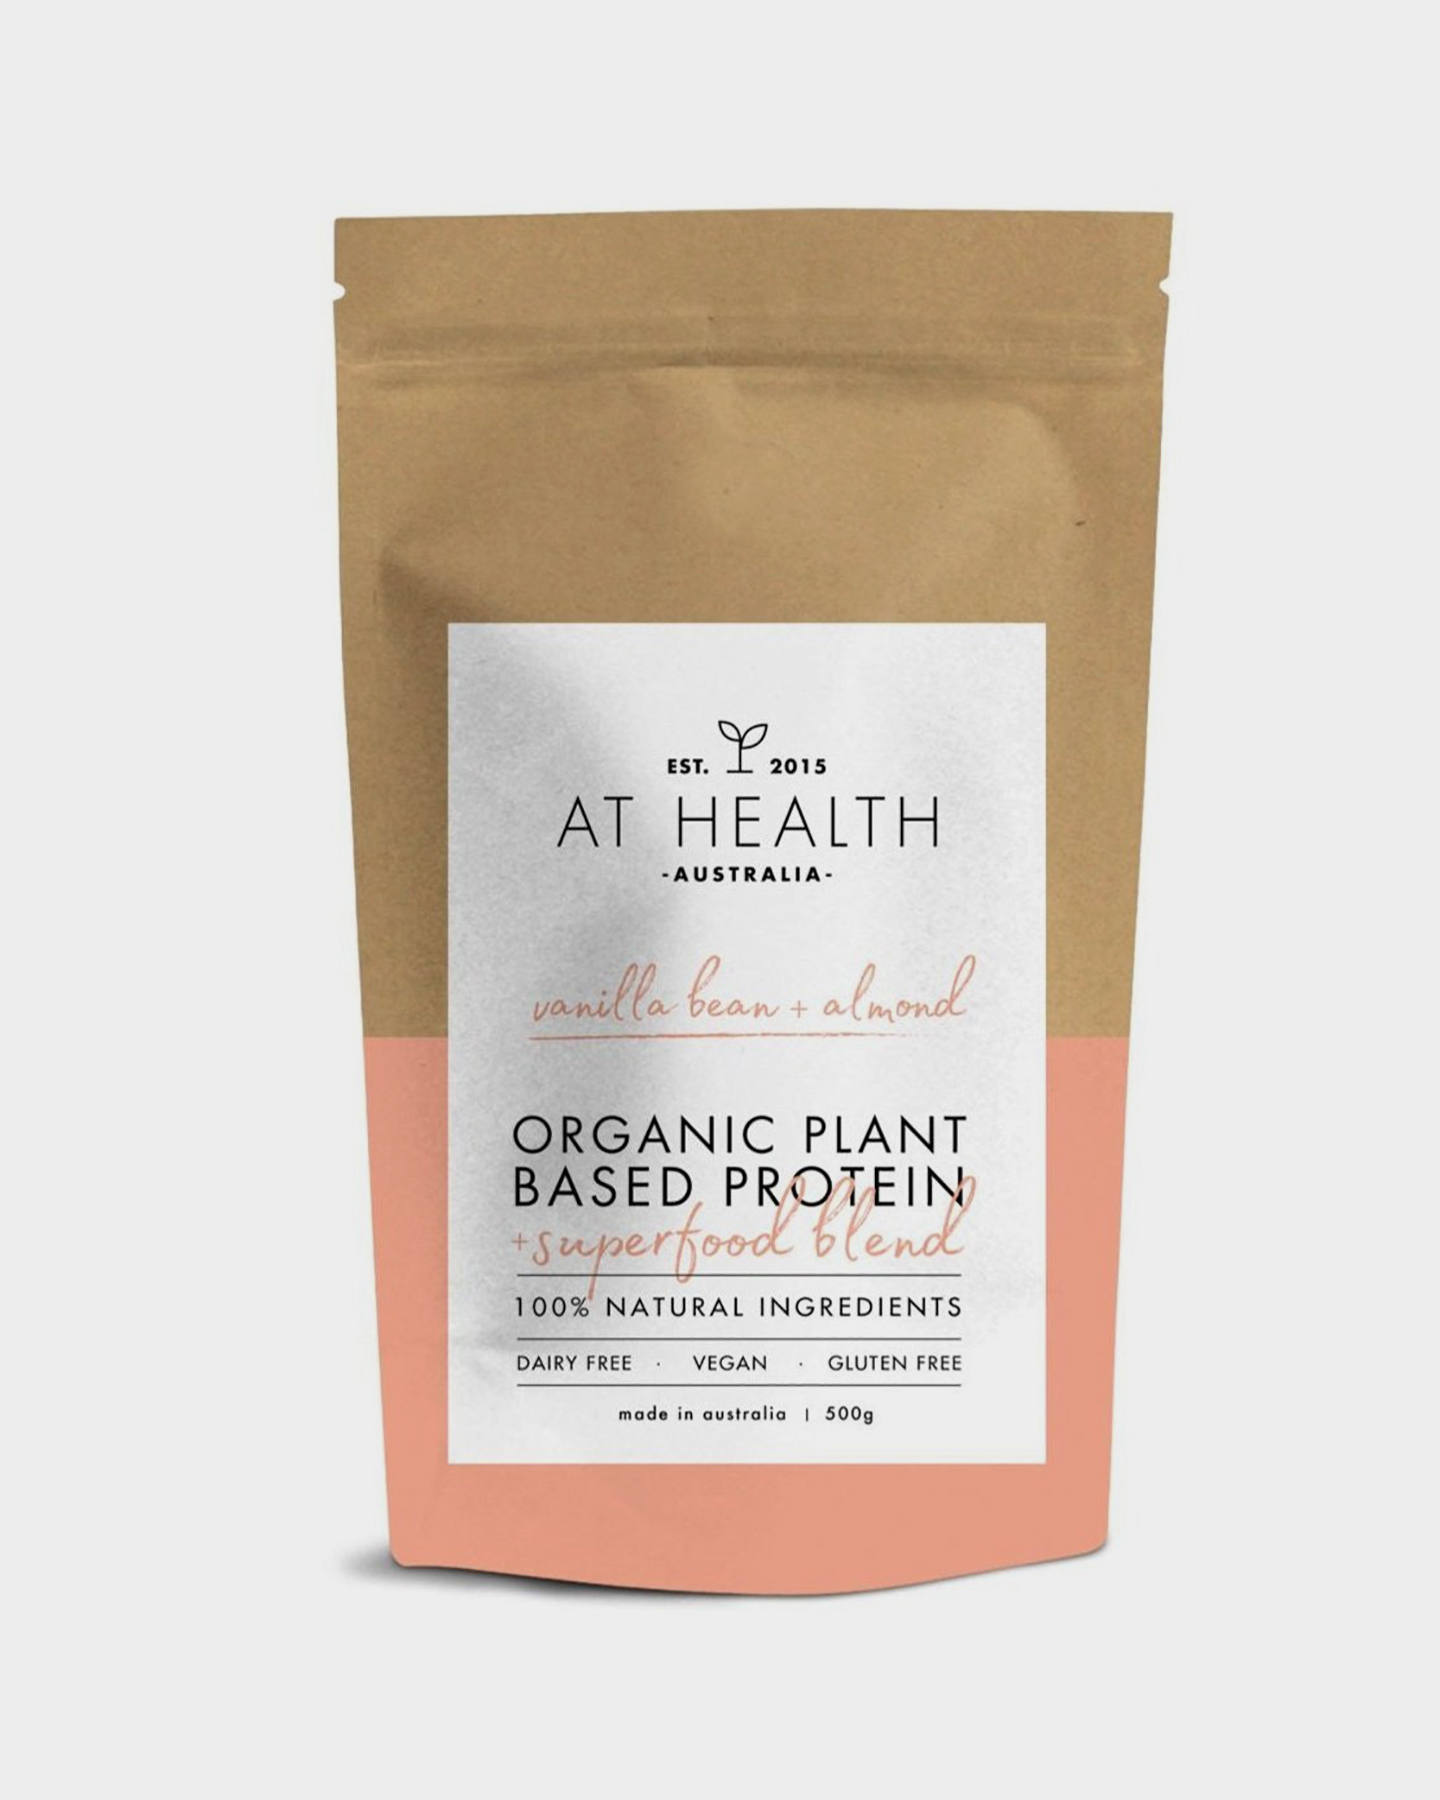 At Health Organic Plant Based Protein + Superfood Blend (Vegan) Almond Almond